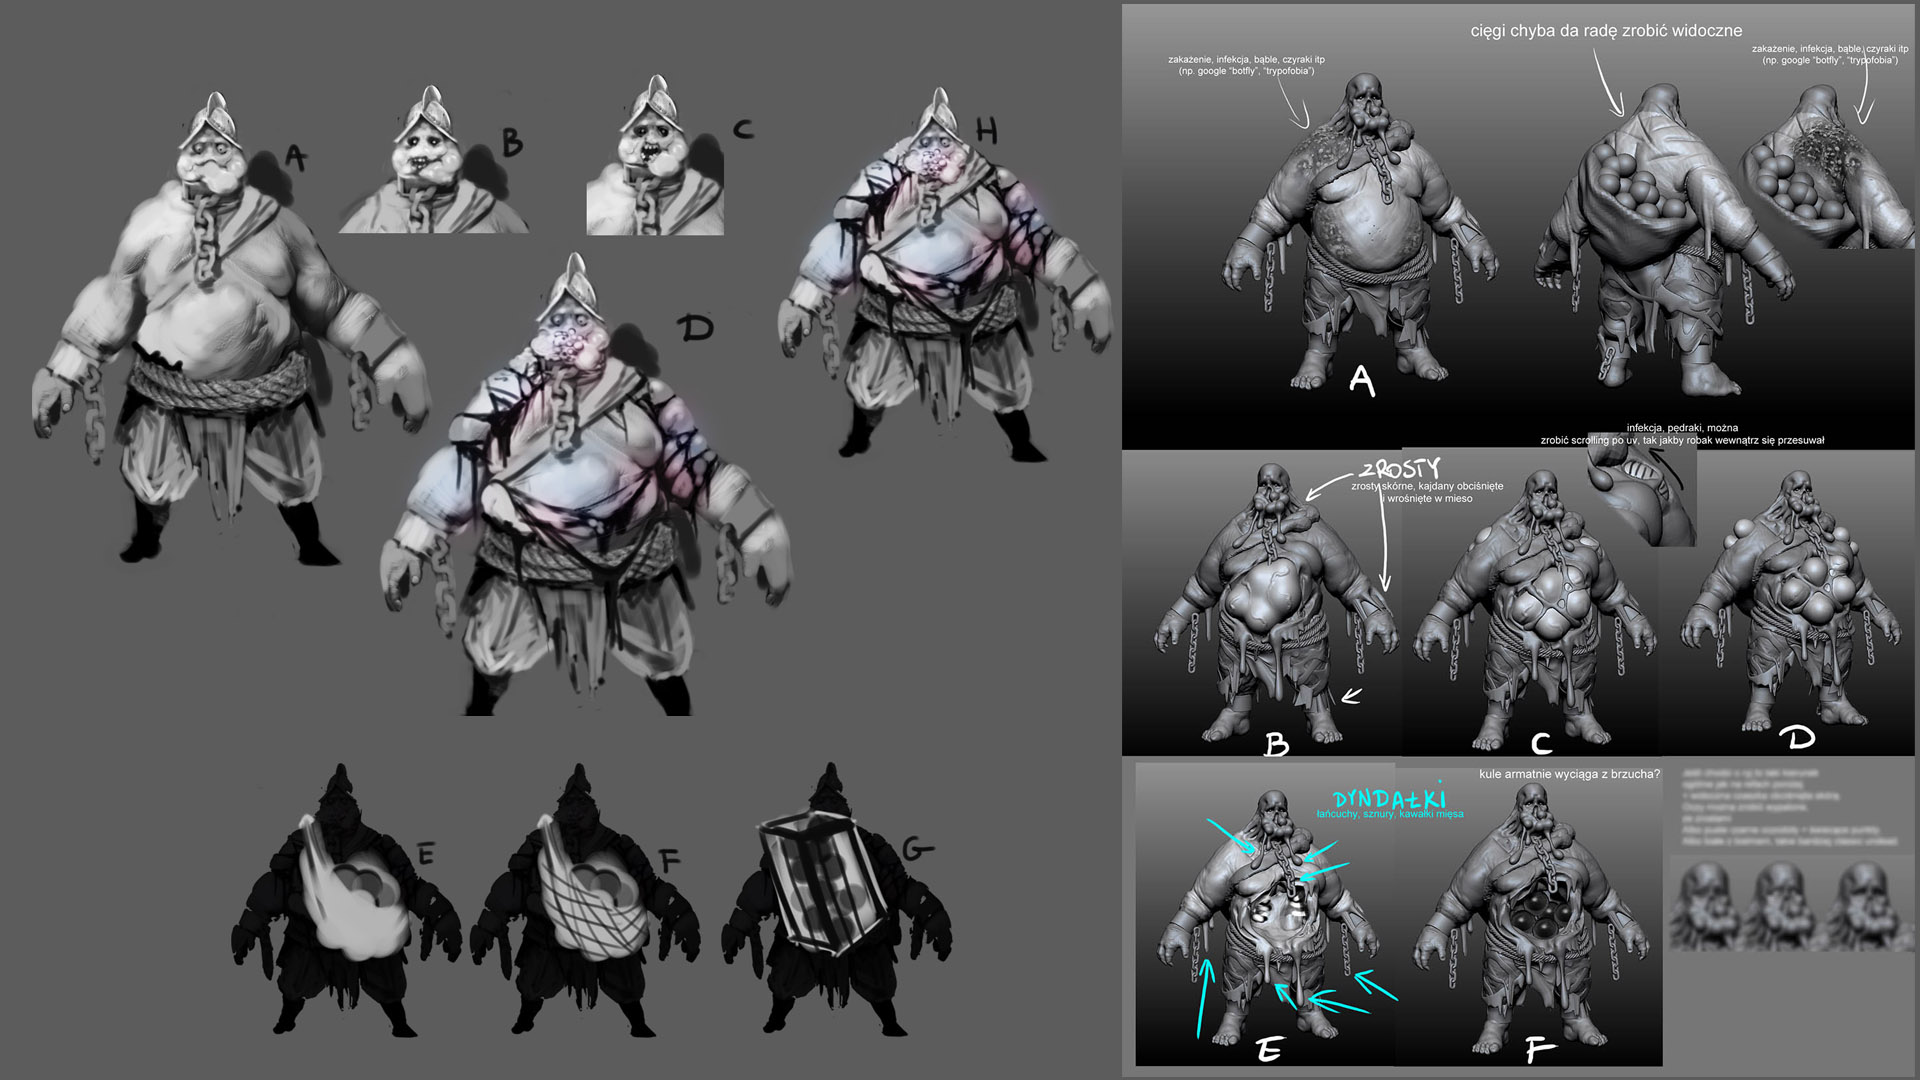 witchfire_ogr_render_30_sketches.jpg